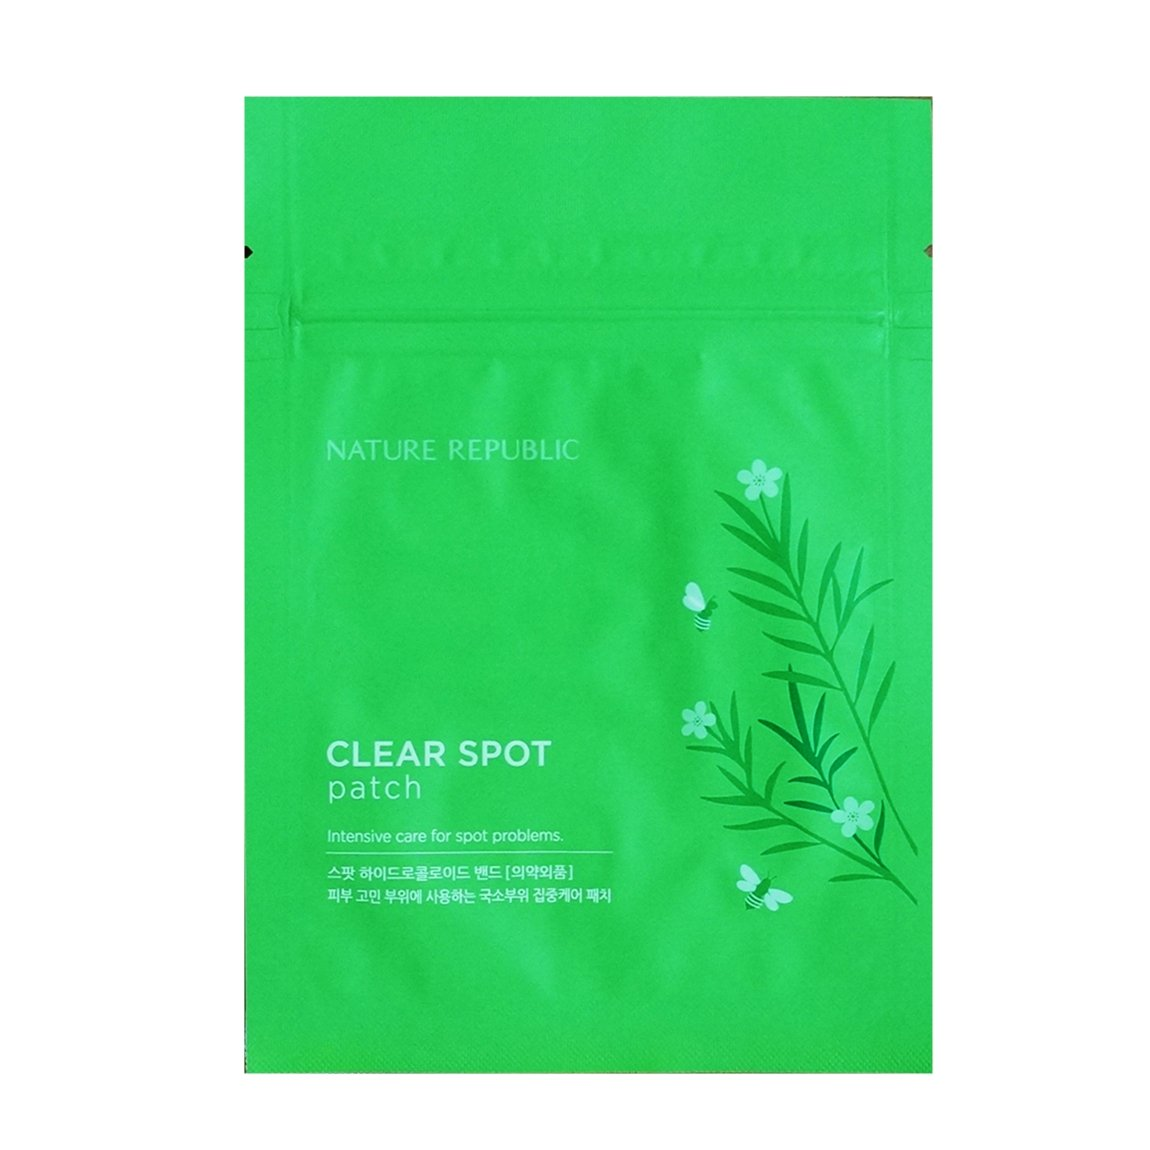 Nature Republic CLEAR SPOT Patches 12 Packs(216 Round Patches) New ADF Hydrocolloid Soma Derm Dressing